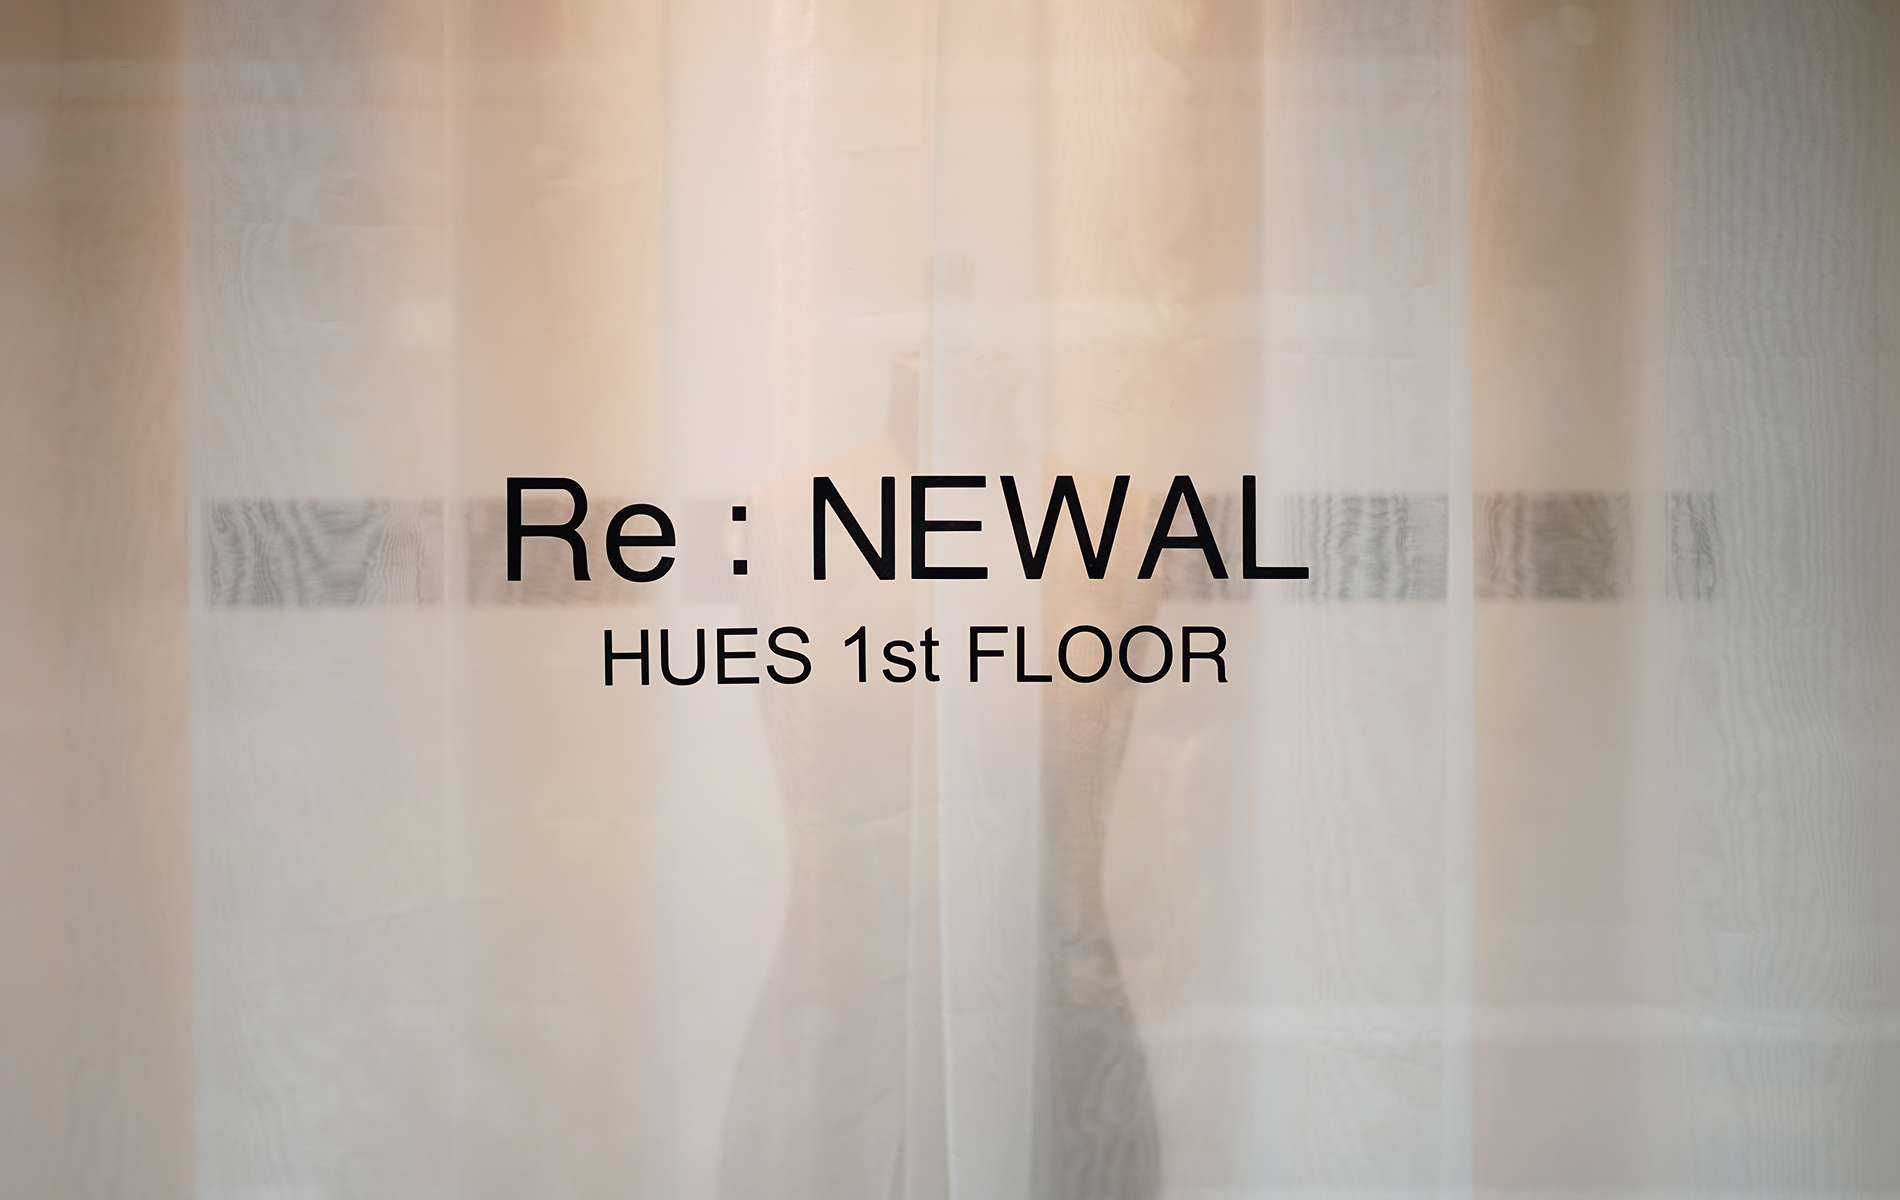 RE-NEWAL OPEN  HUES 1ST FLOOR